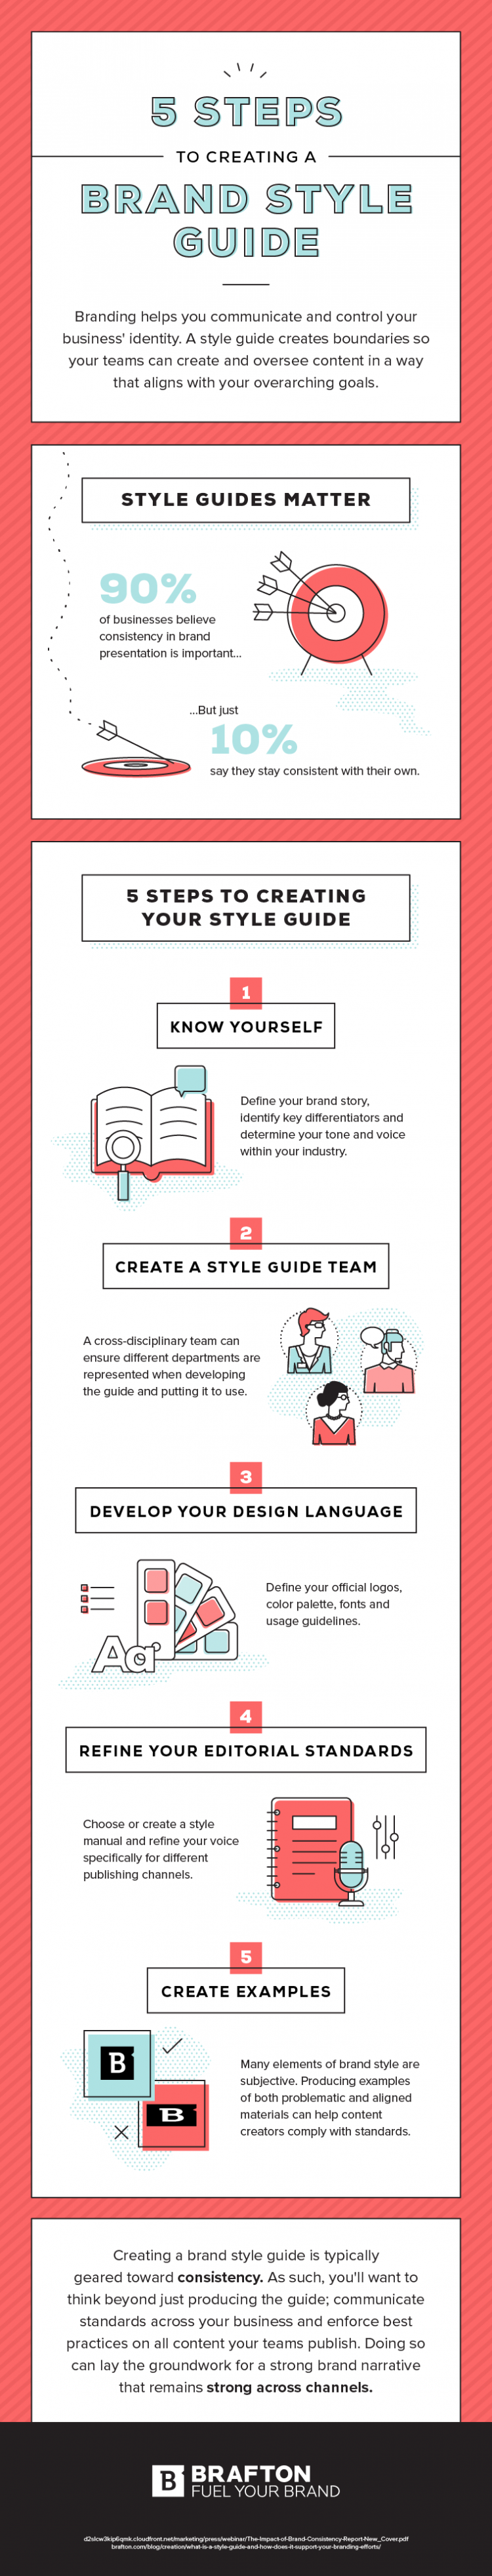 5 steps to creating a brand style guide infographic